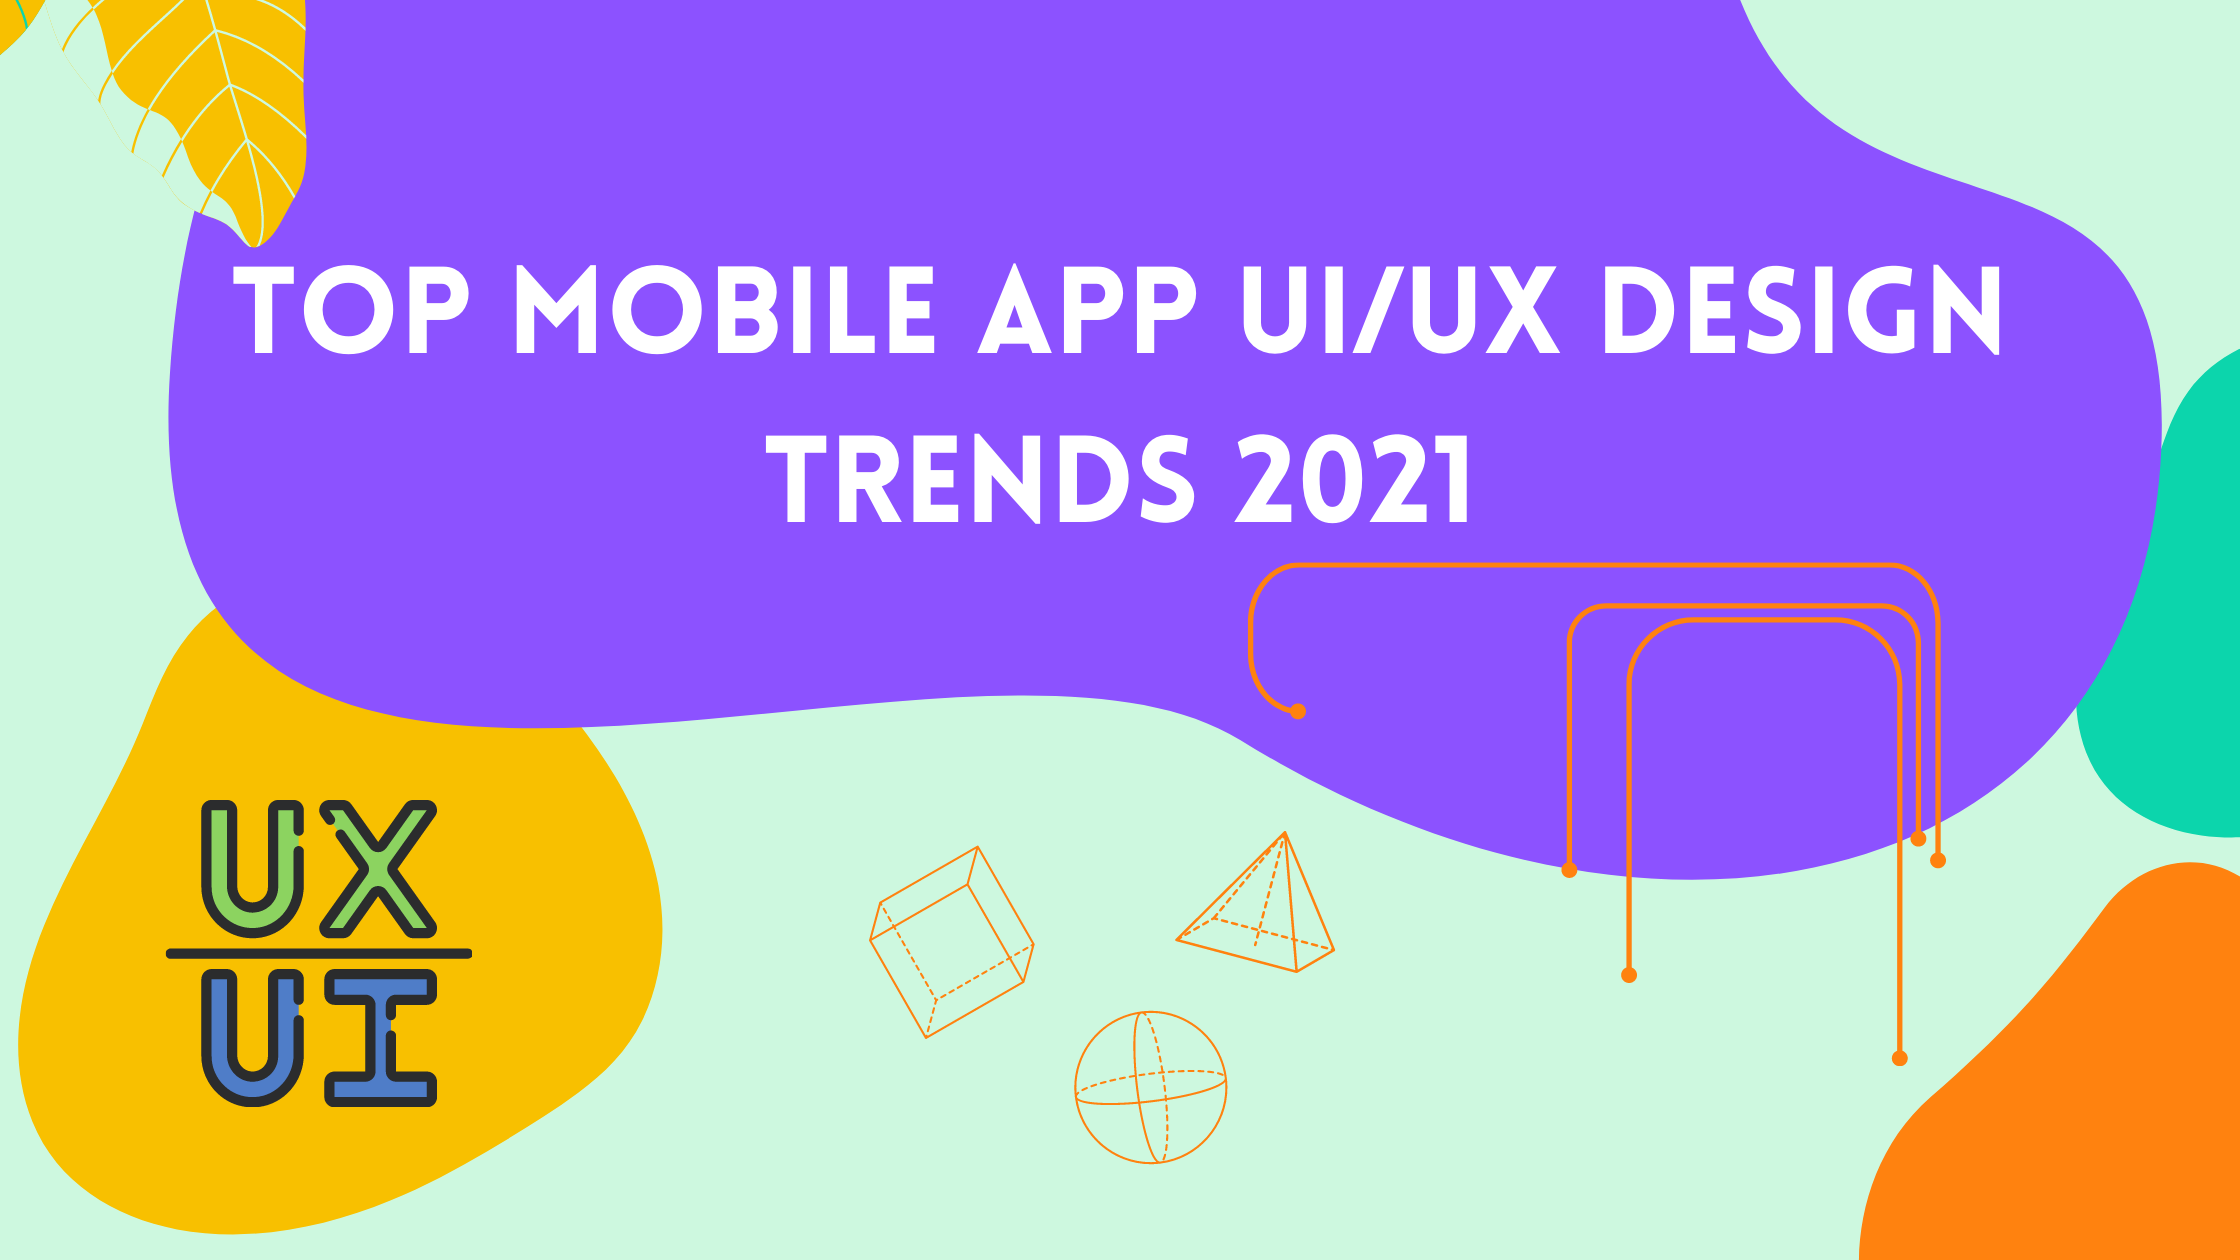 Don't Miss Out Top Mobile App UI/UX Design Trends That Will Rule 2021